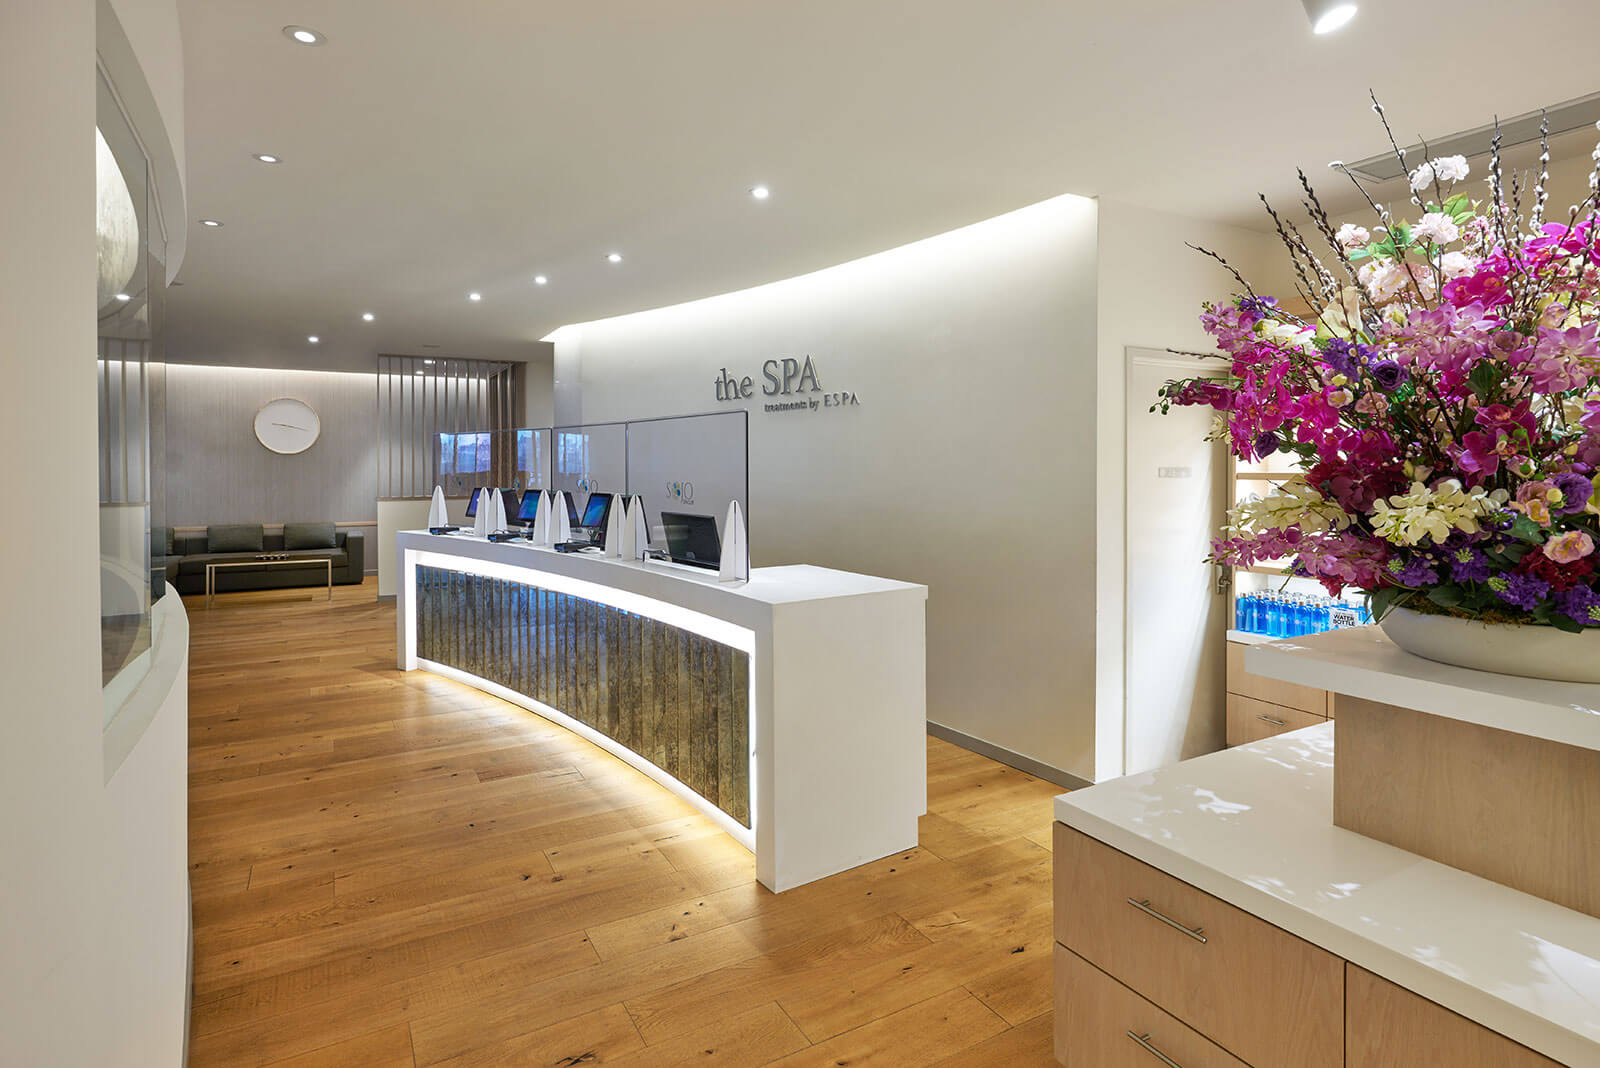 The spa reception area including a front desk, hardwood floors, and waiting area in the background.